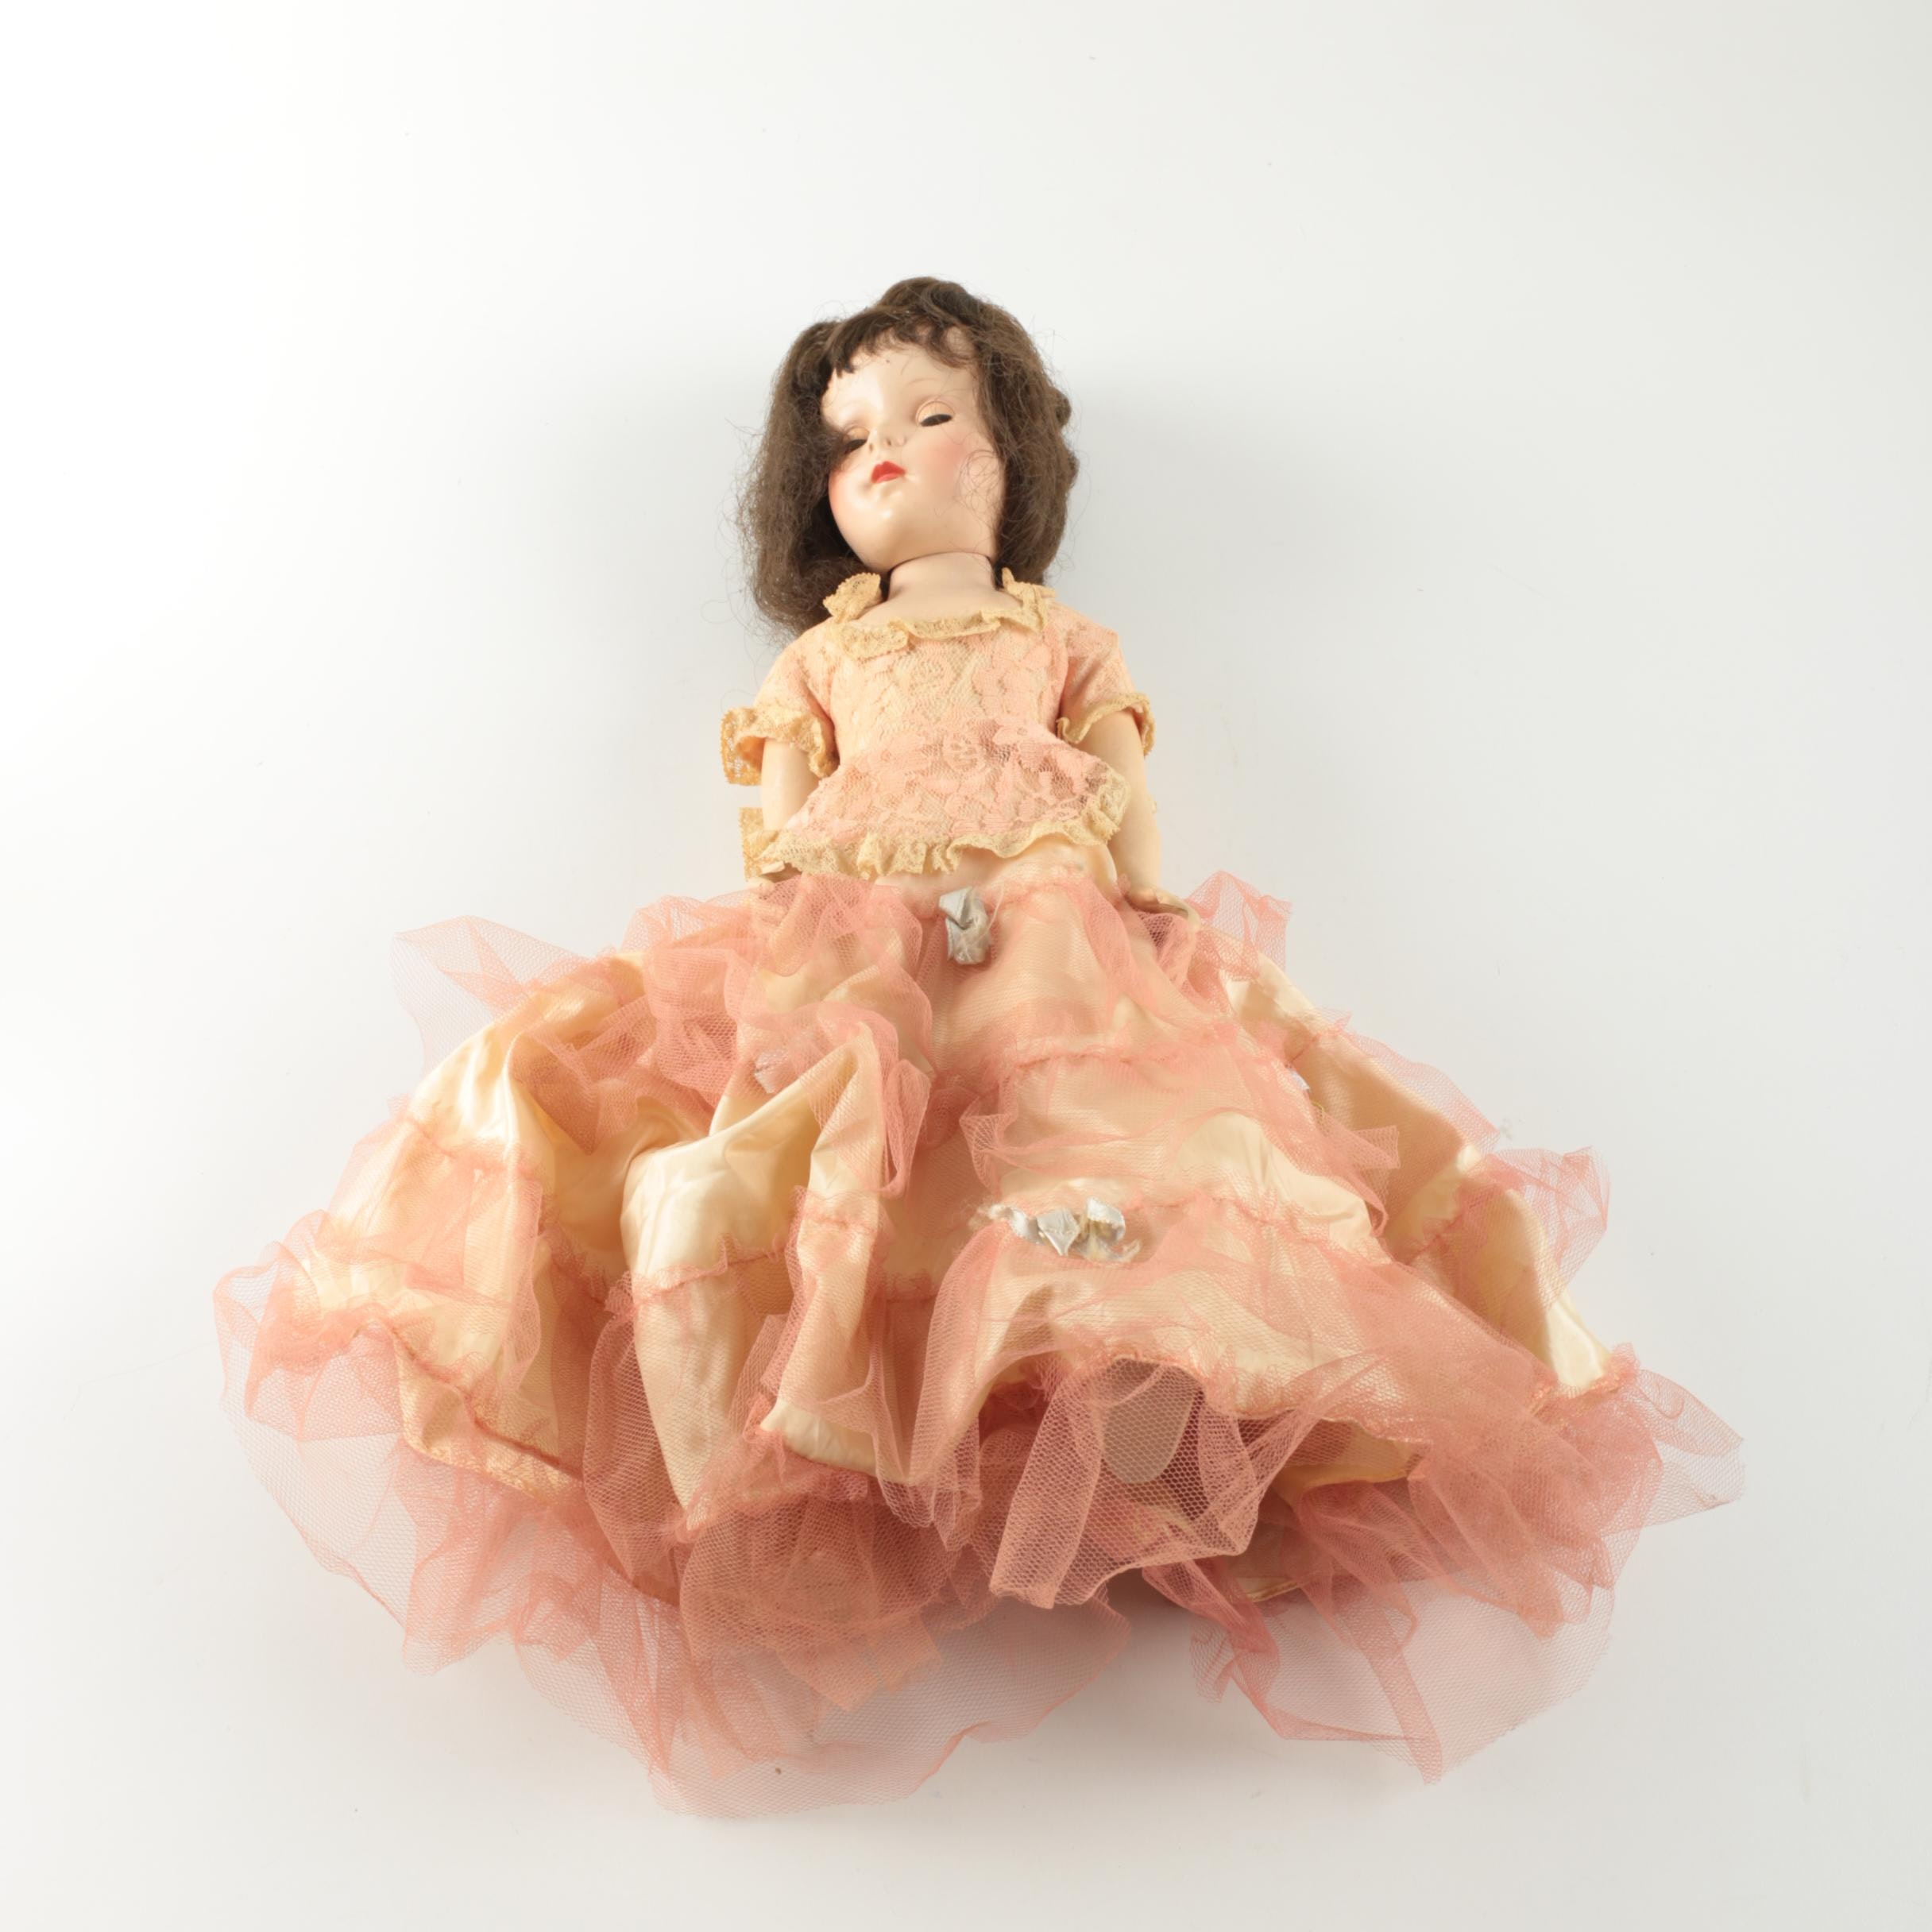 Vintage Hand-Painted Composition Doll